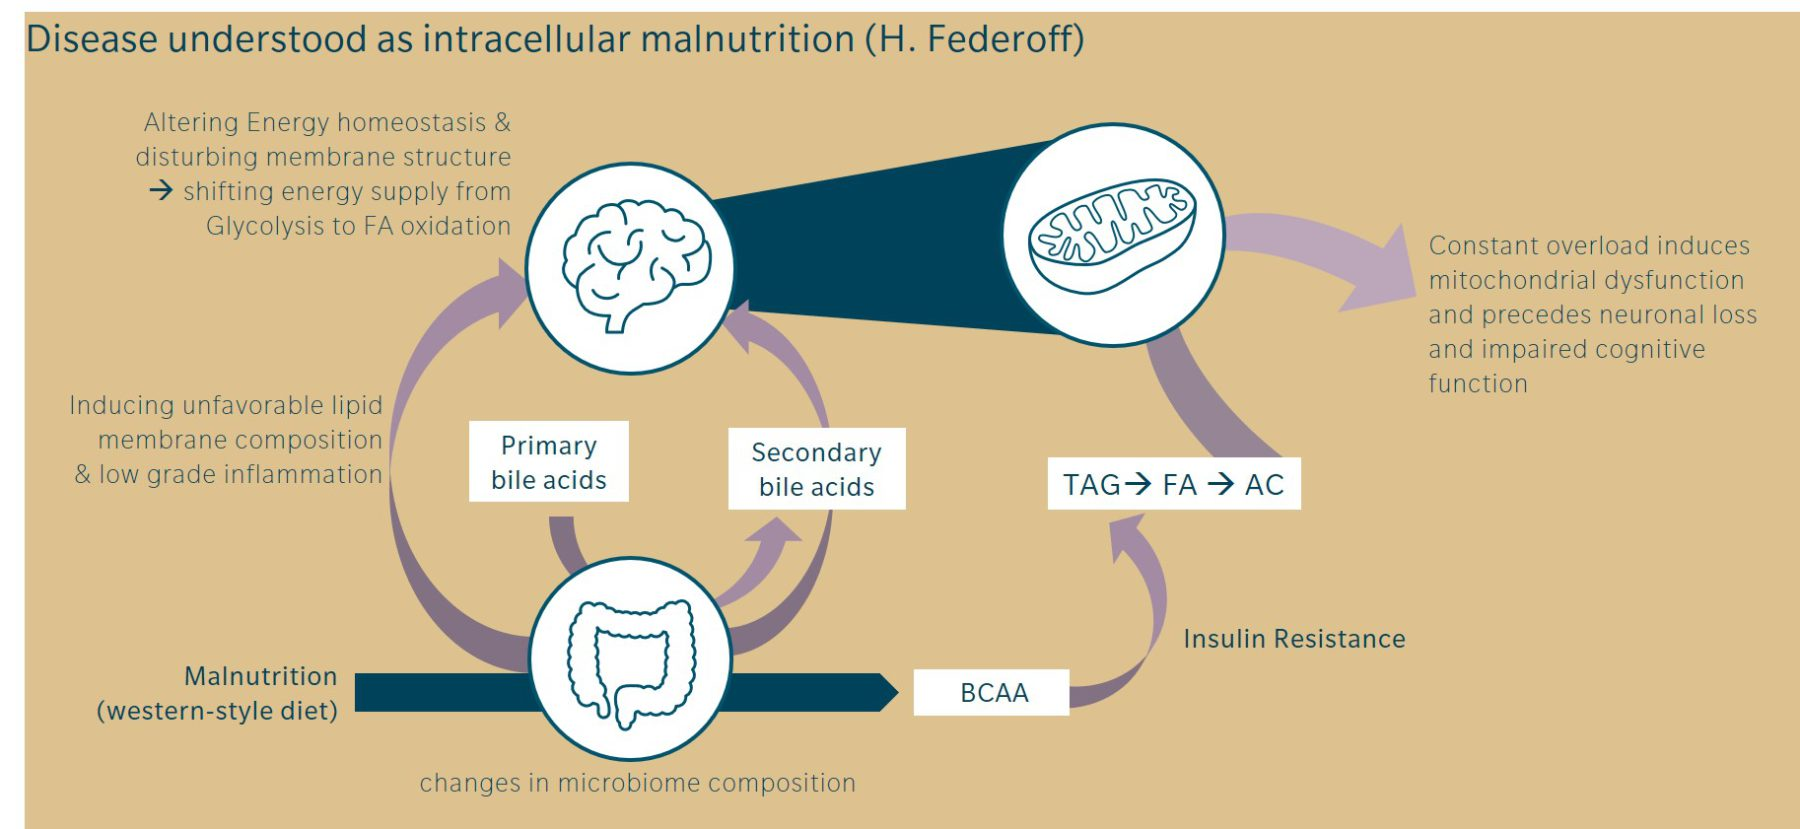 factors influencing alzheimer's disease, gut-brain interactions and the role of micochondria and fatty acid metabolism